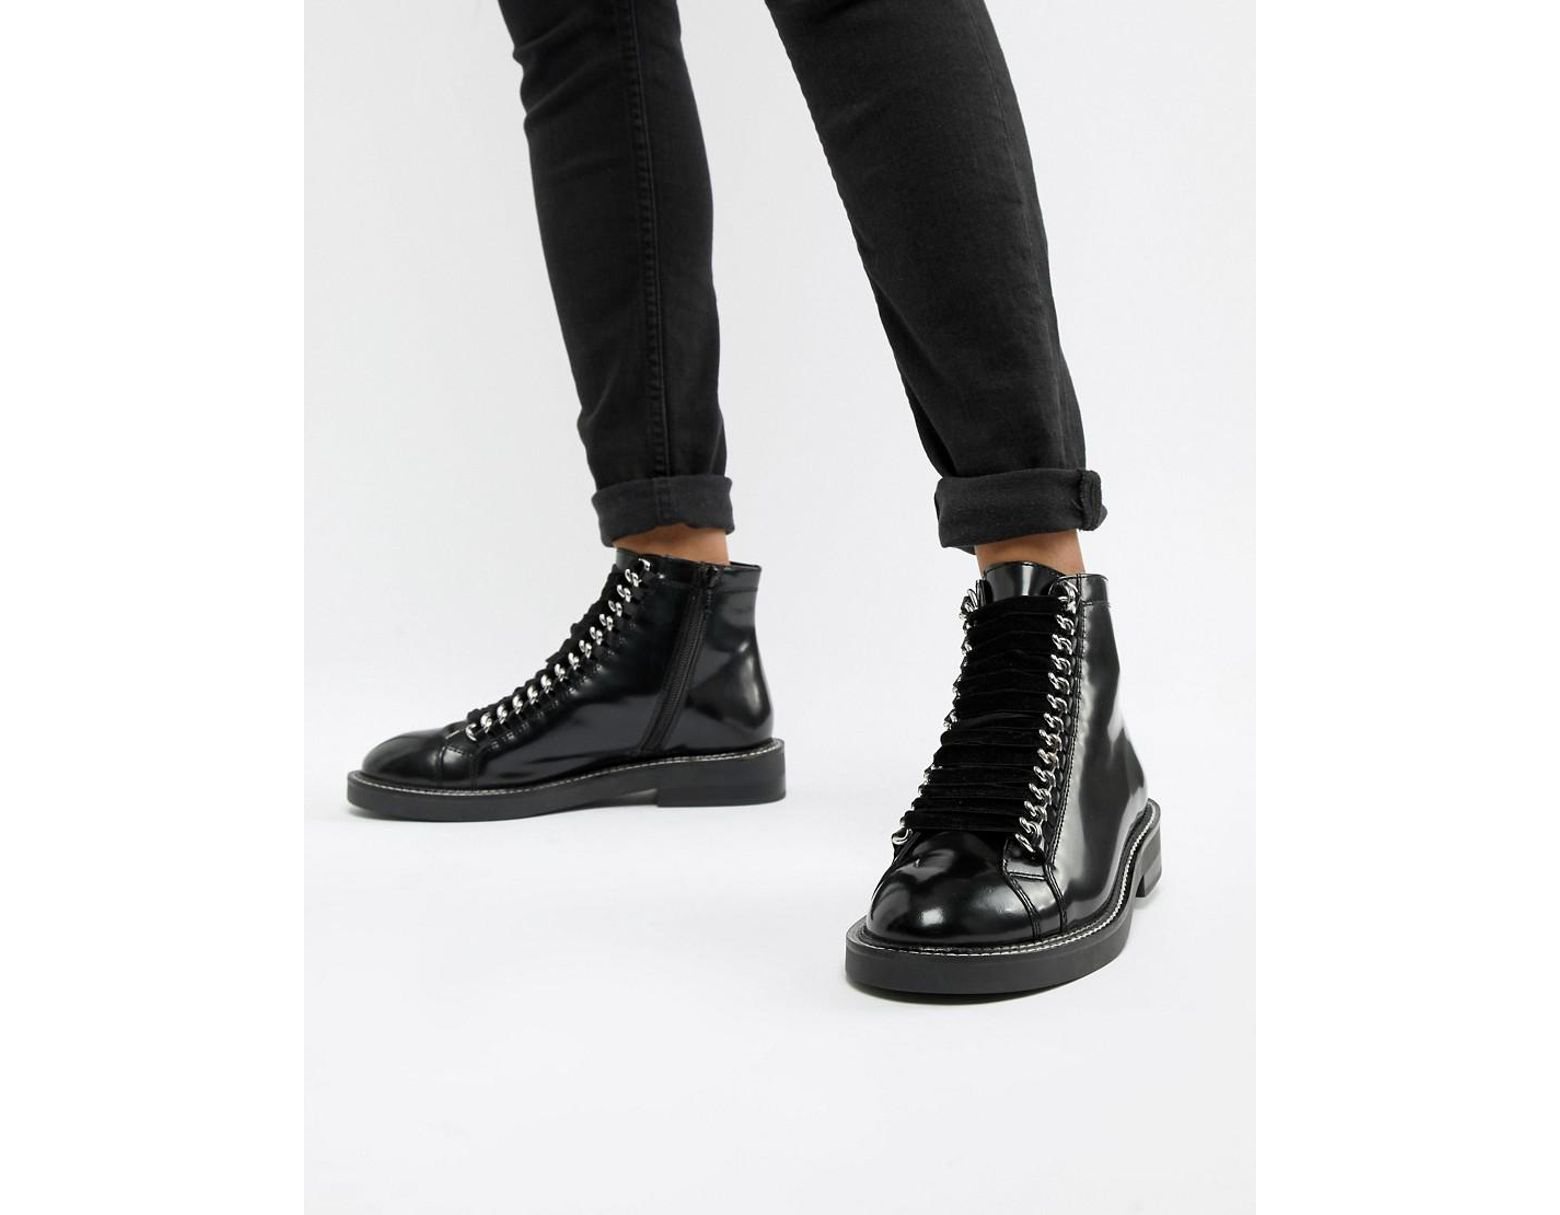 86844653ba2 Women's Black Amellie Leather Lace Up Chain Ankle Boots